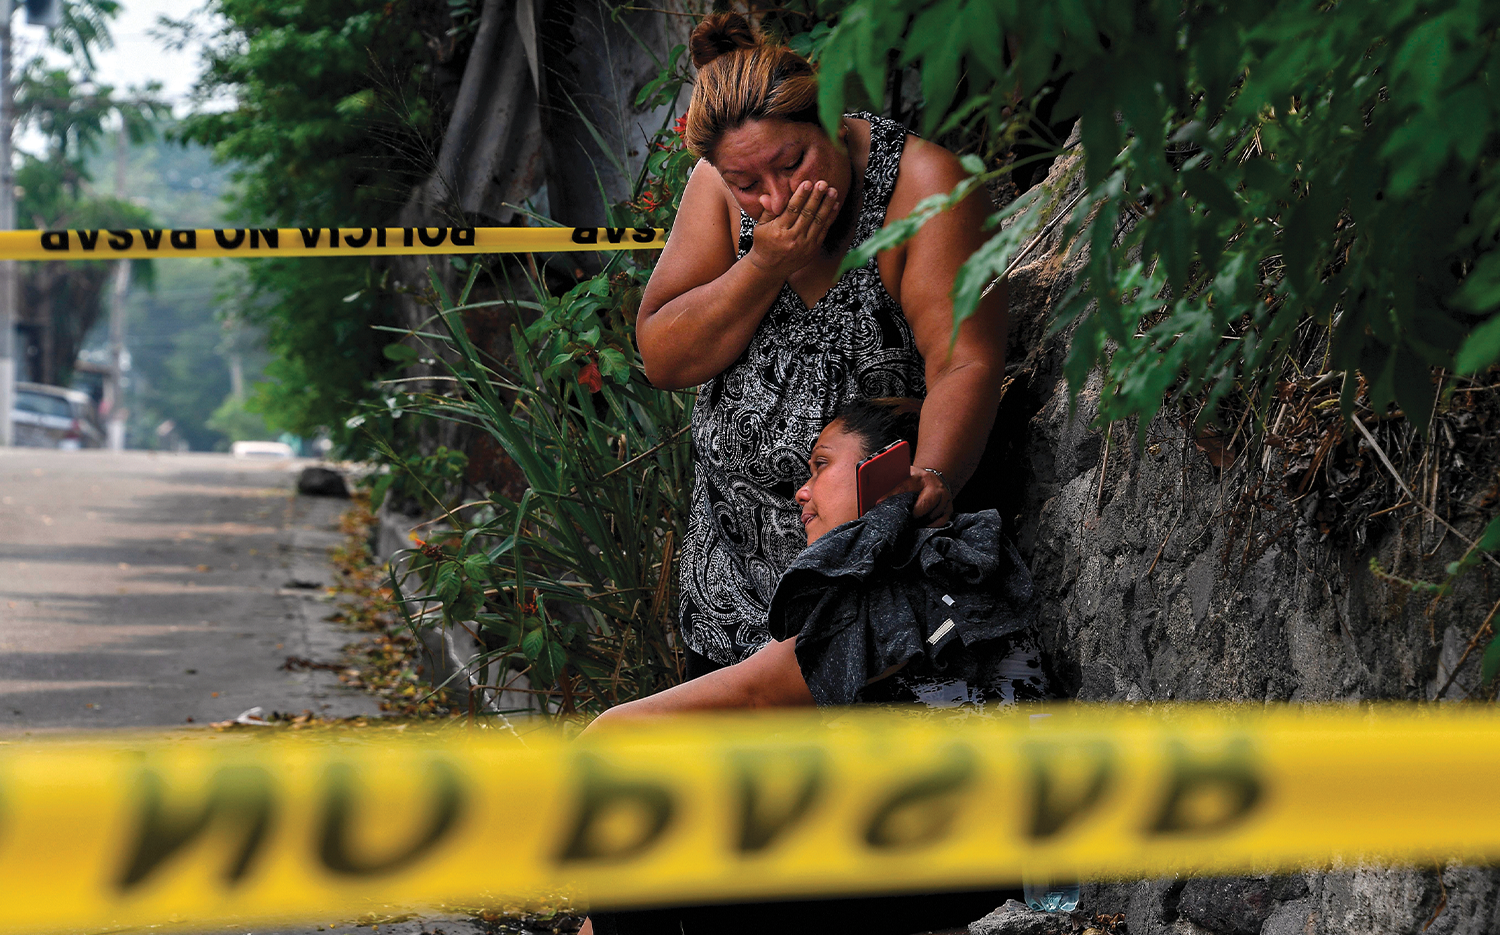 Relatives of a man shot dead in Ayutuxtepeque, El Salvador, cry near the crime scene.